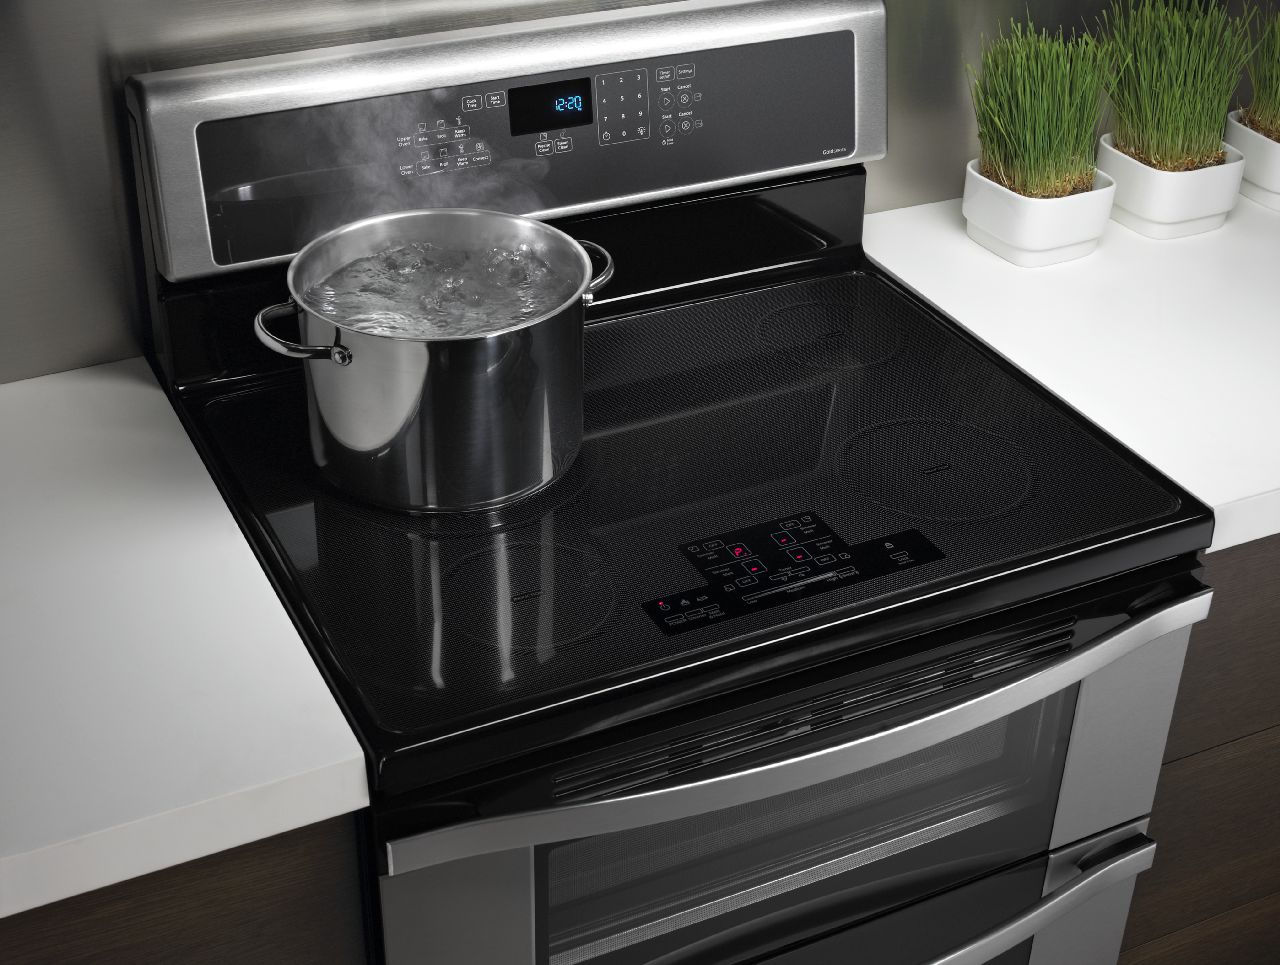 Whirlpool Brand Launches Industry S First Induction Double Oven Freestanding Range